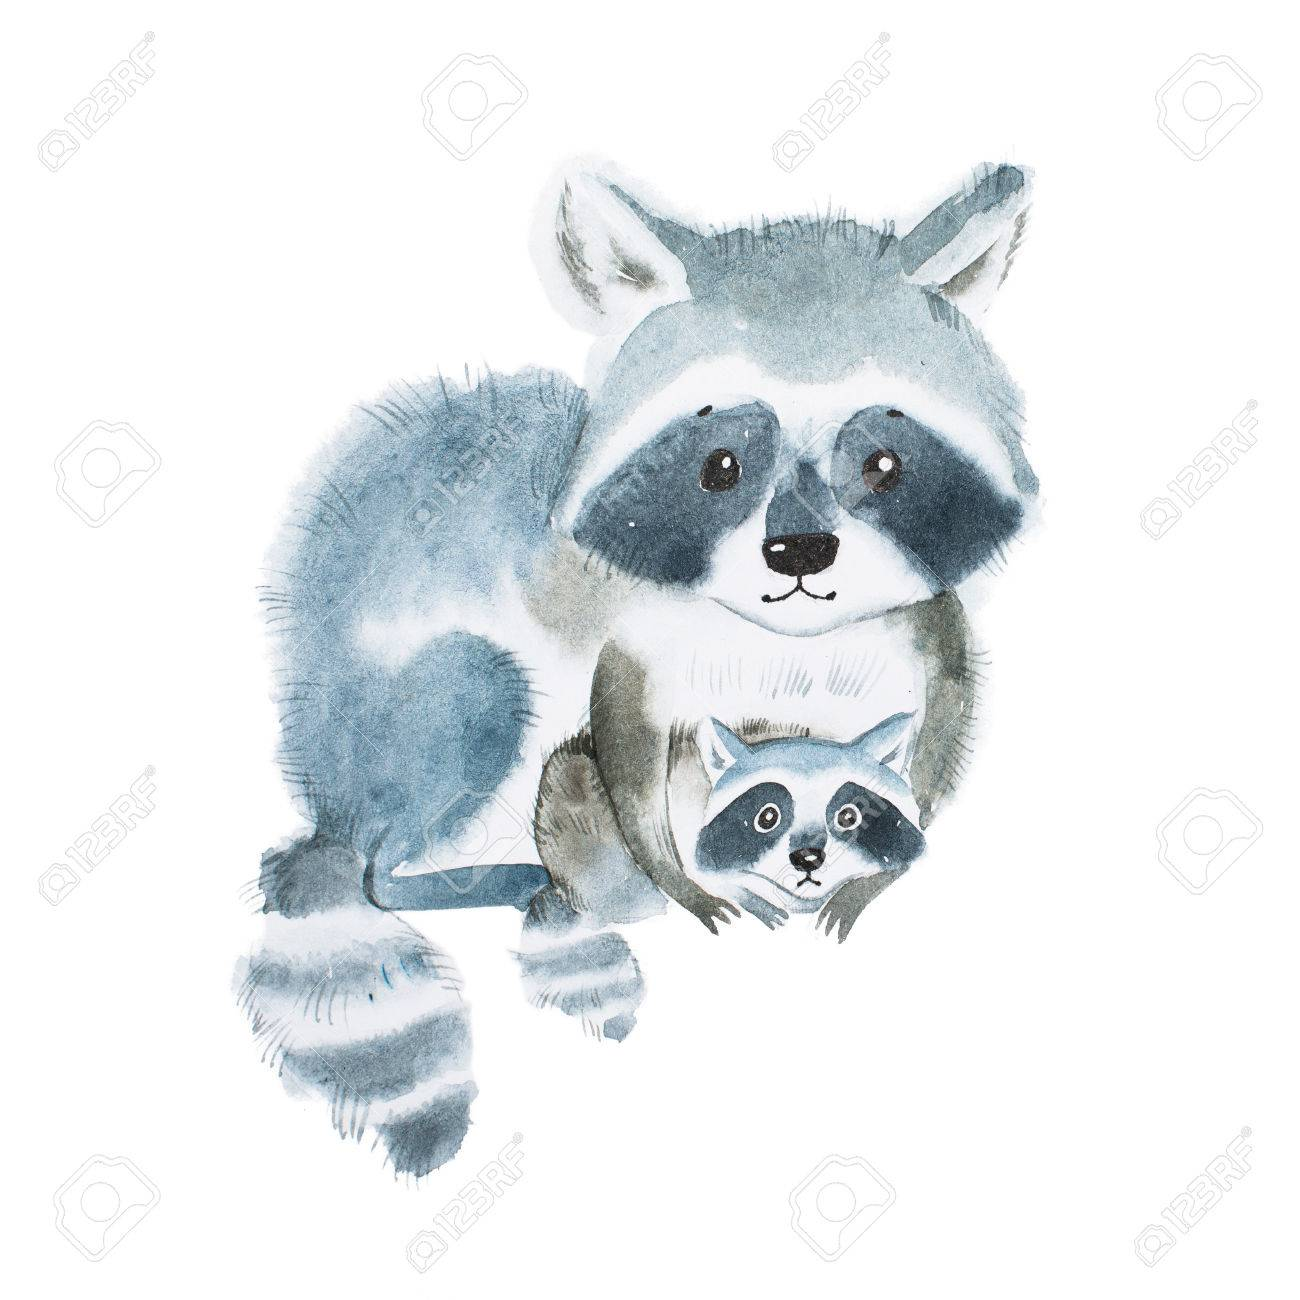 Cute fuzzy raccoon family, mother warming her little baby. Artwork created with watercolor technique. - 80694305